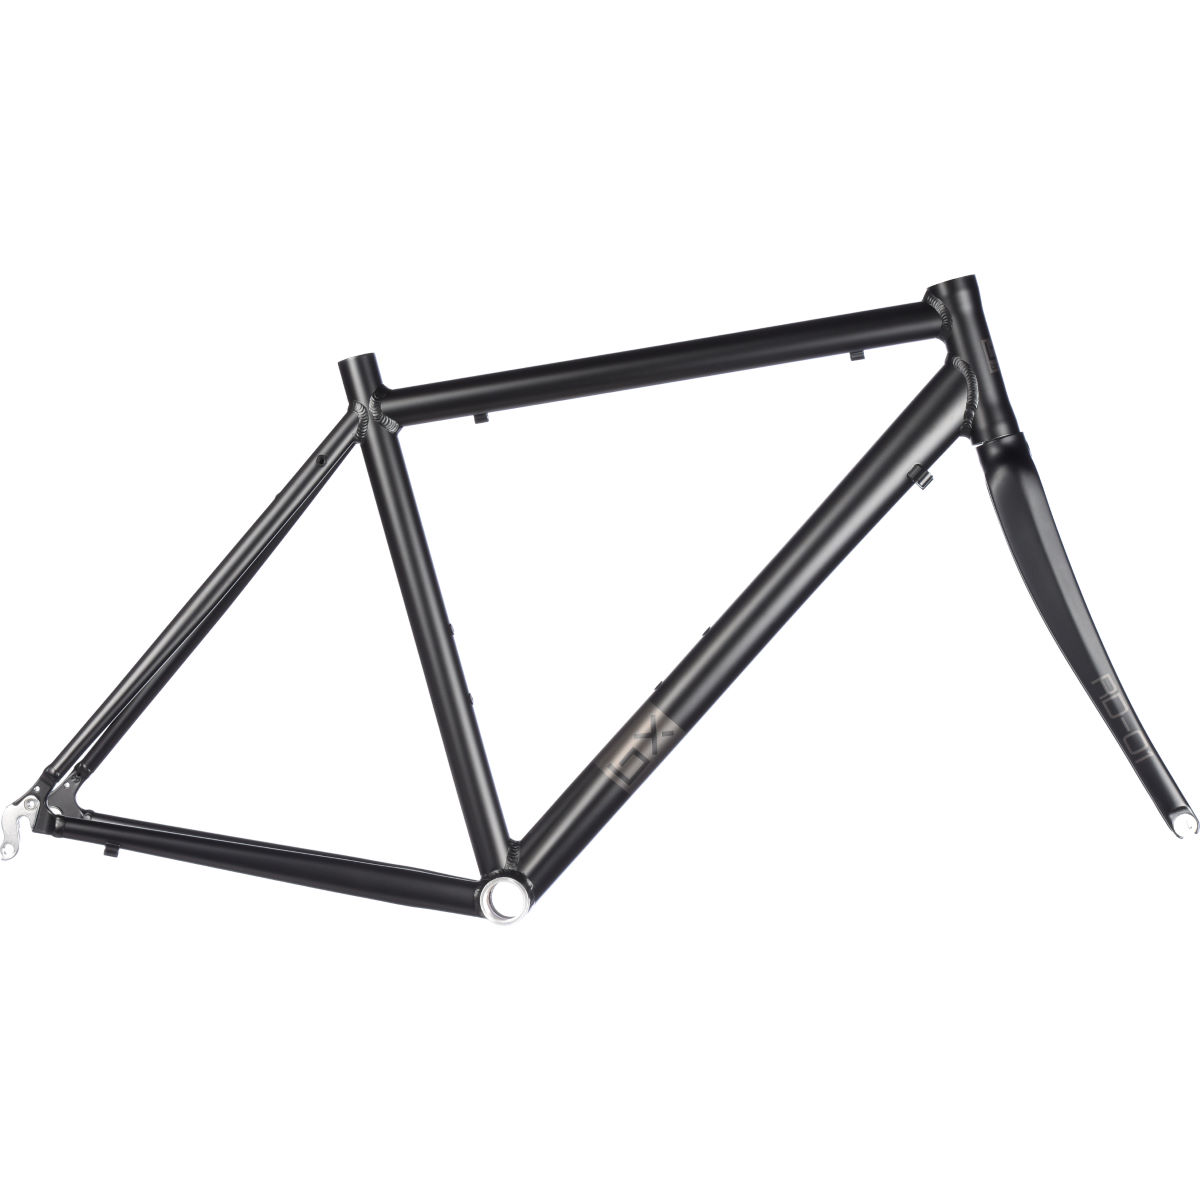 Brand-X Brand-X RD-01 Road Bike Frameset   Road Bike Frames